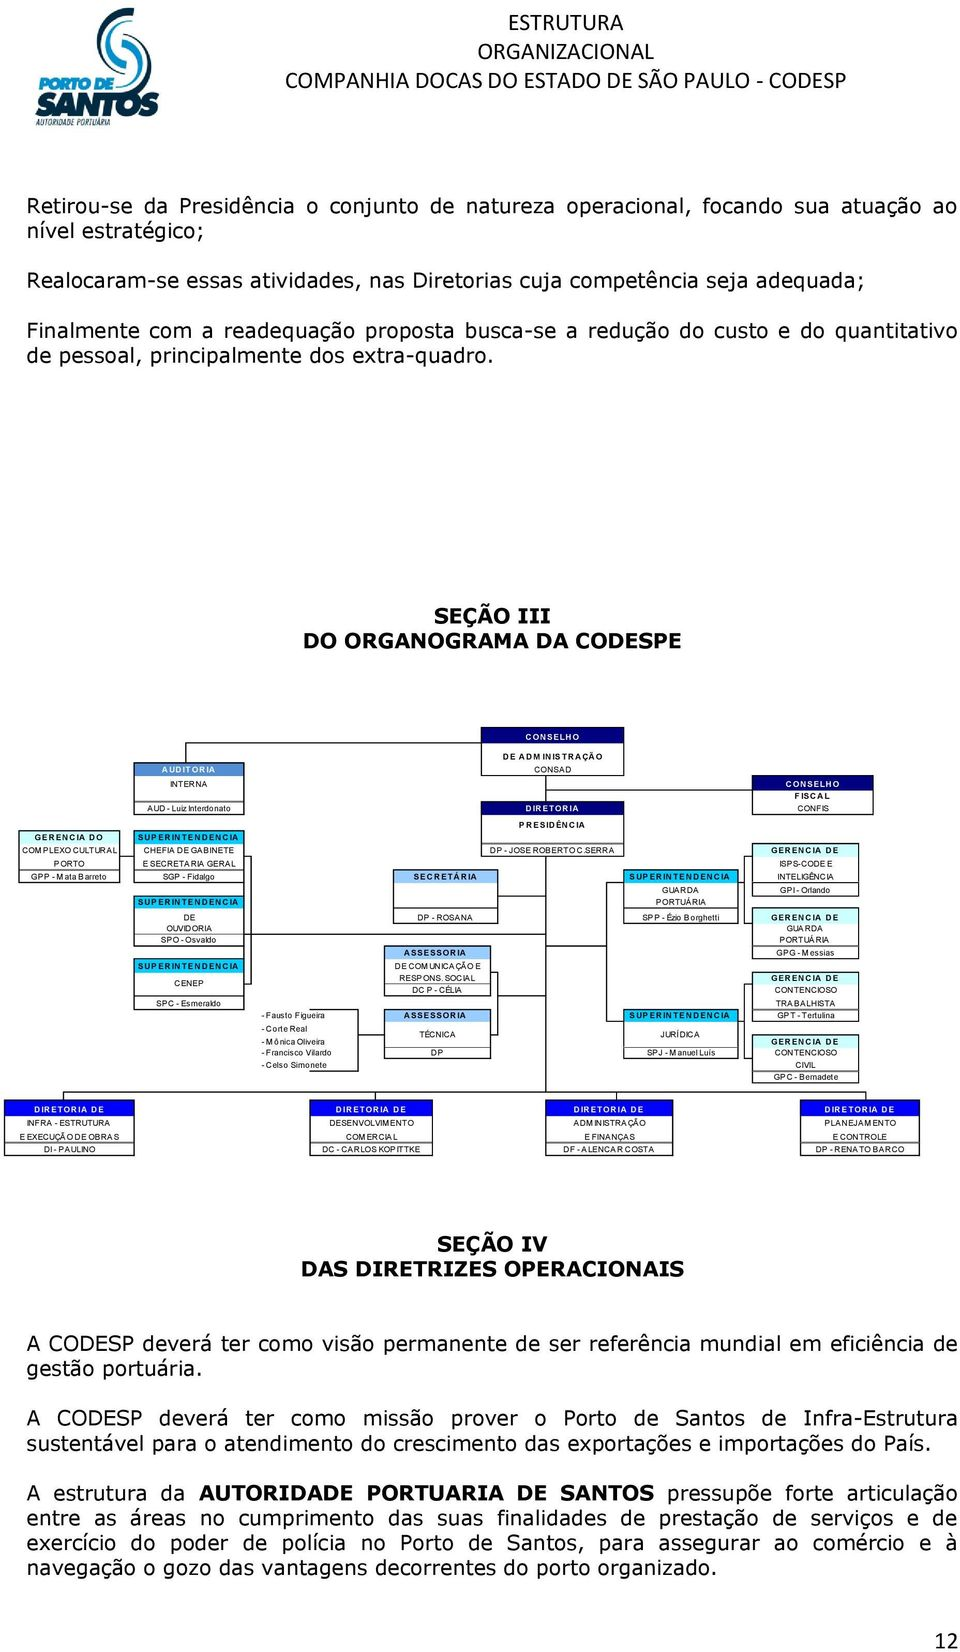 SEÇÃO III DO ORGANOGRAMA DA CODESPE C ON SELH O D E A D M IN IST R A ÇÃ O A UD IT OR IA CONSAD INTERNA C ON SELH O F ISC A L AUD - Luiz Interdonato D IR ET OR IA CONFIS P R ESID ÊN C IA GERENCIA DO